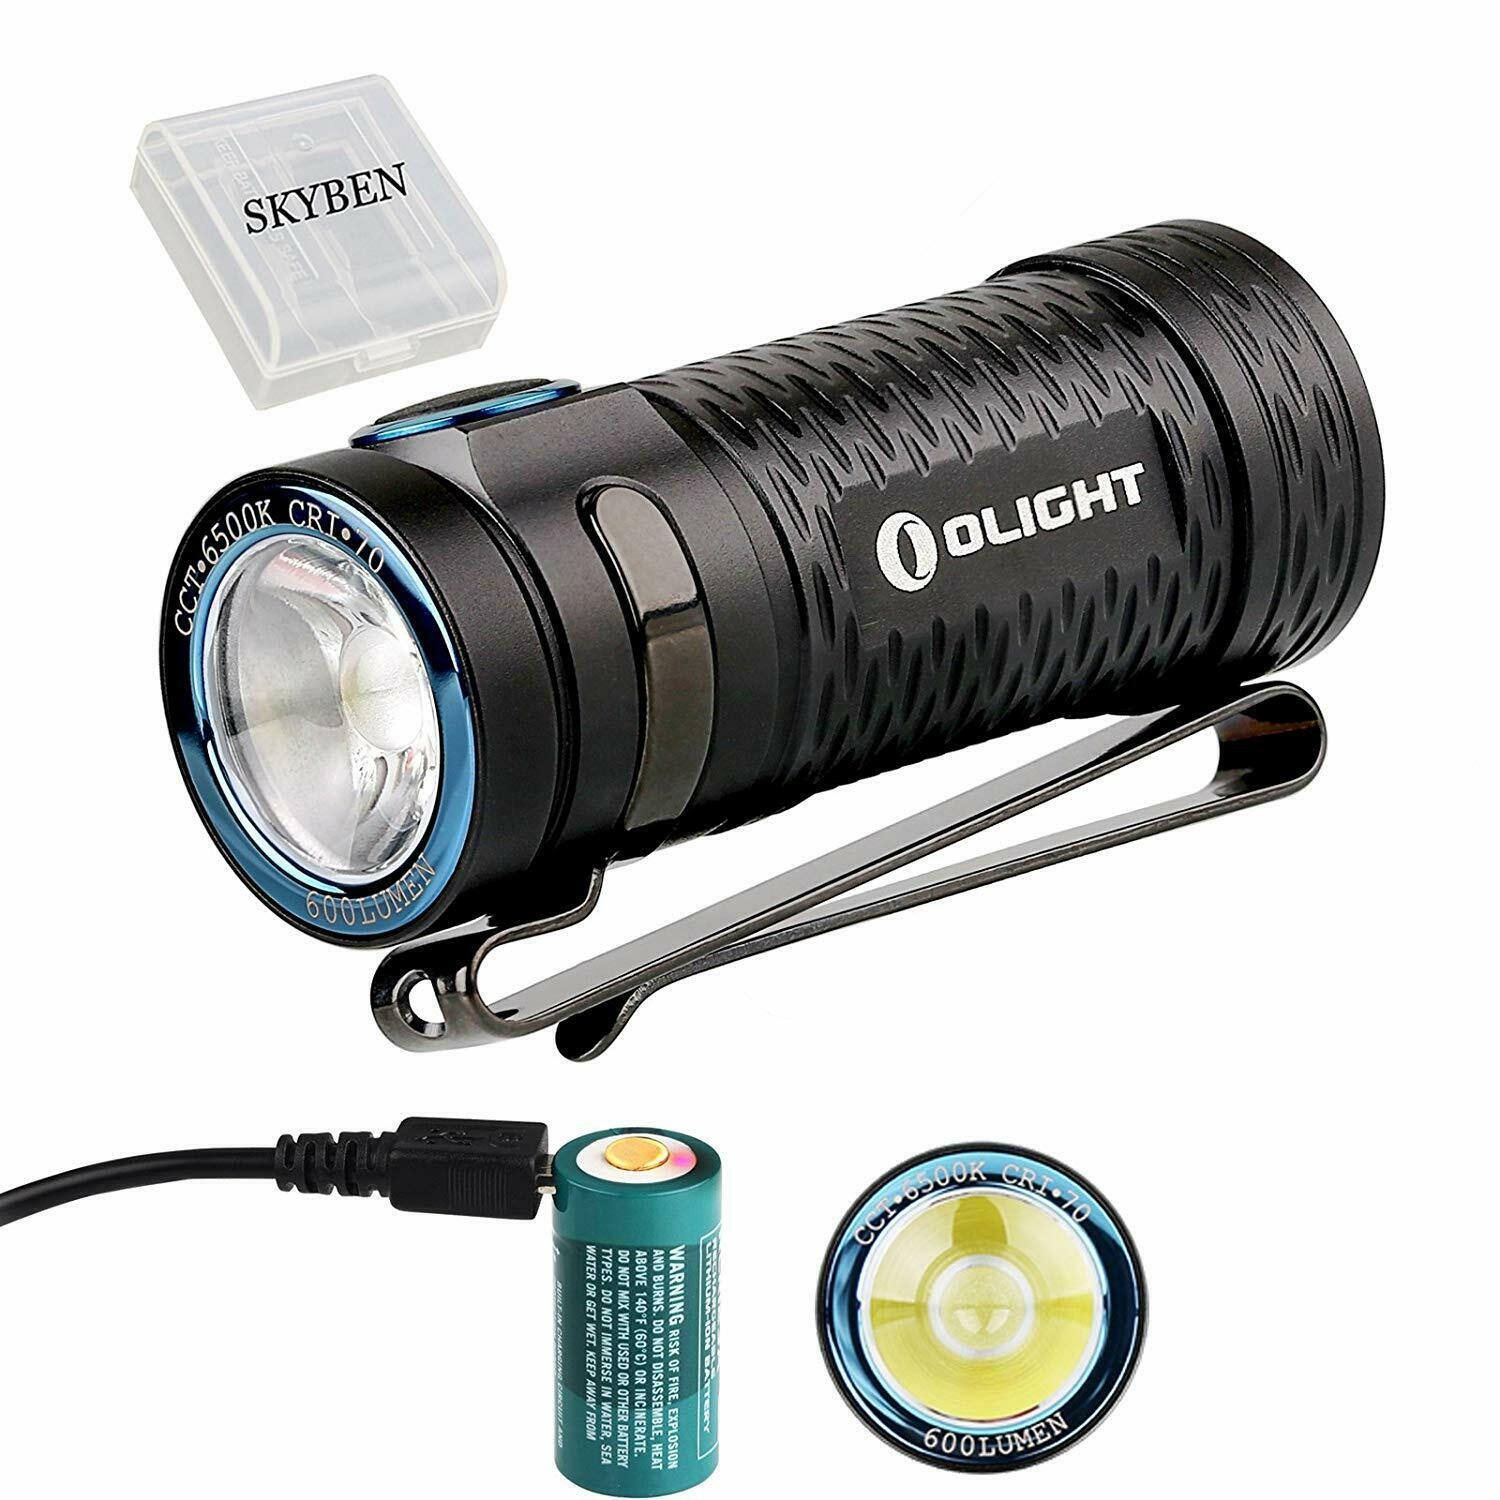 Olight S1 MINI Cree XM-L2  LED 600 Lumens Ultra Compact LED Flashlight Smallest  quality first consumers first